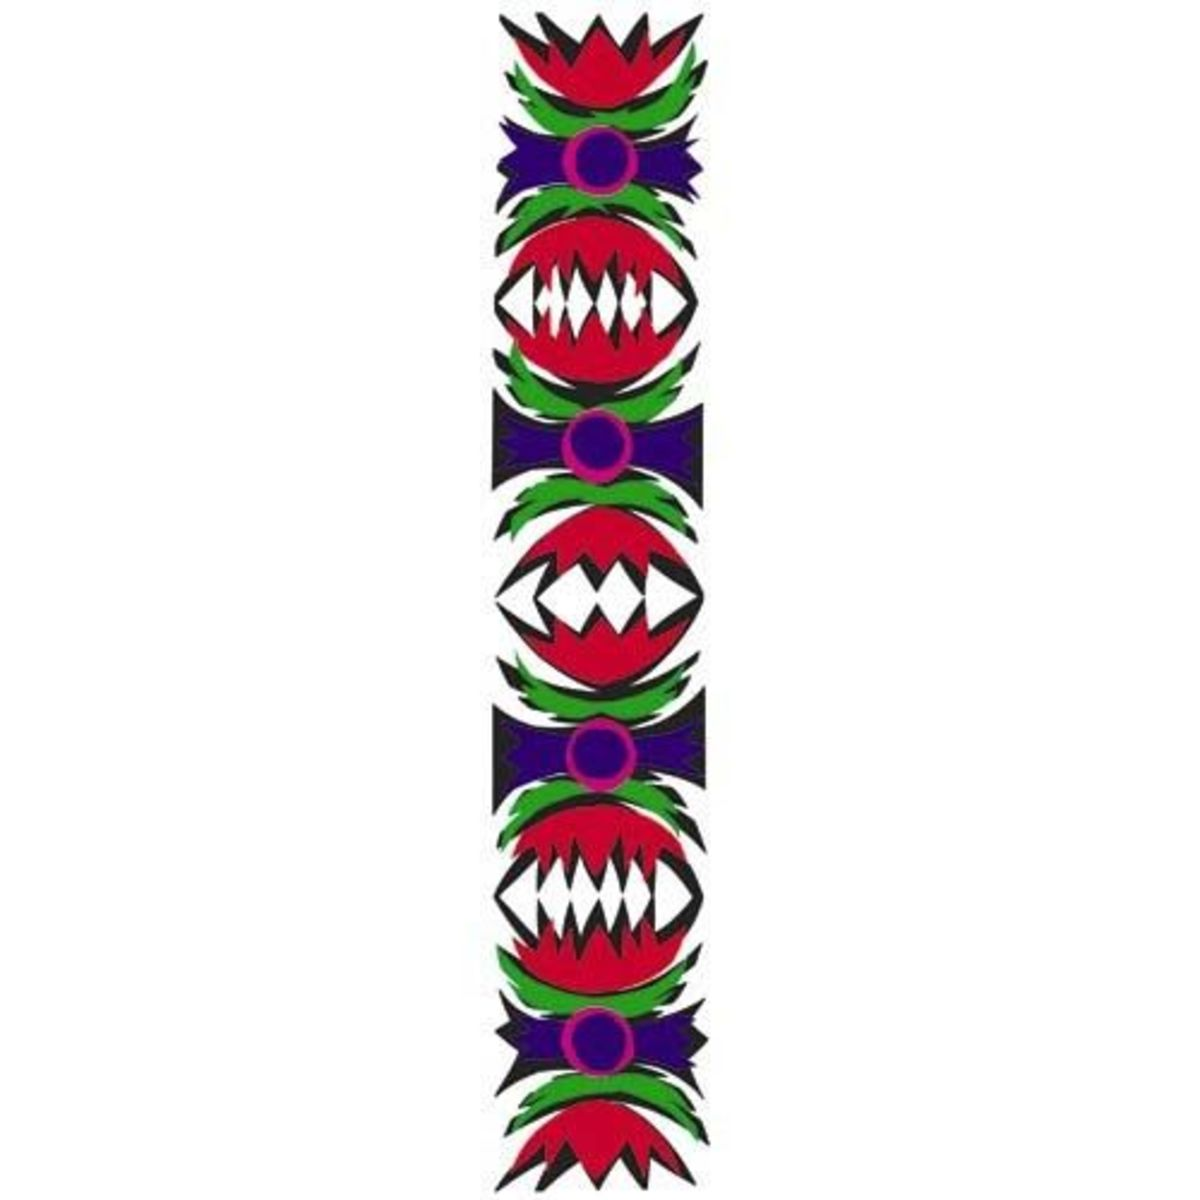 The ribbon-like Wstega (FSTENG-gah) design has eight repeats and comes from the Rawa and Opoczno regions of Poland. This design may be in a single color or multicolored (such as this example).